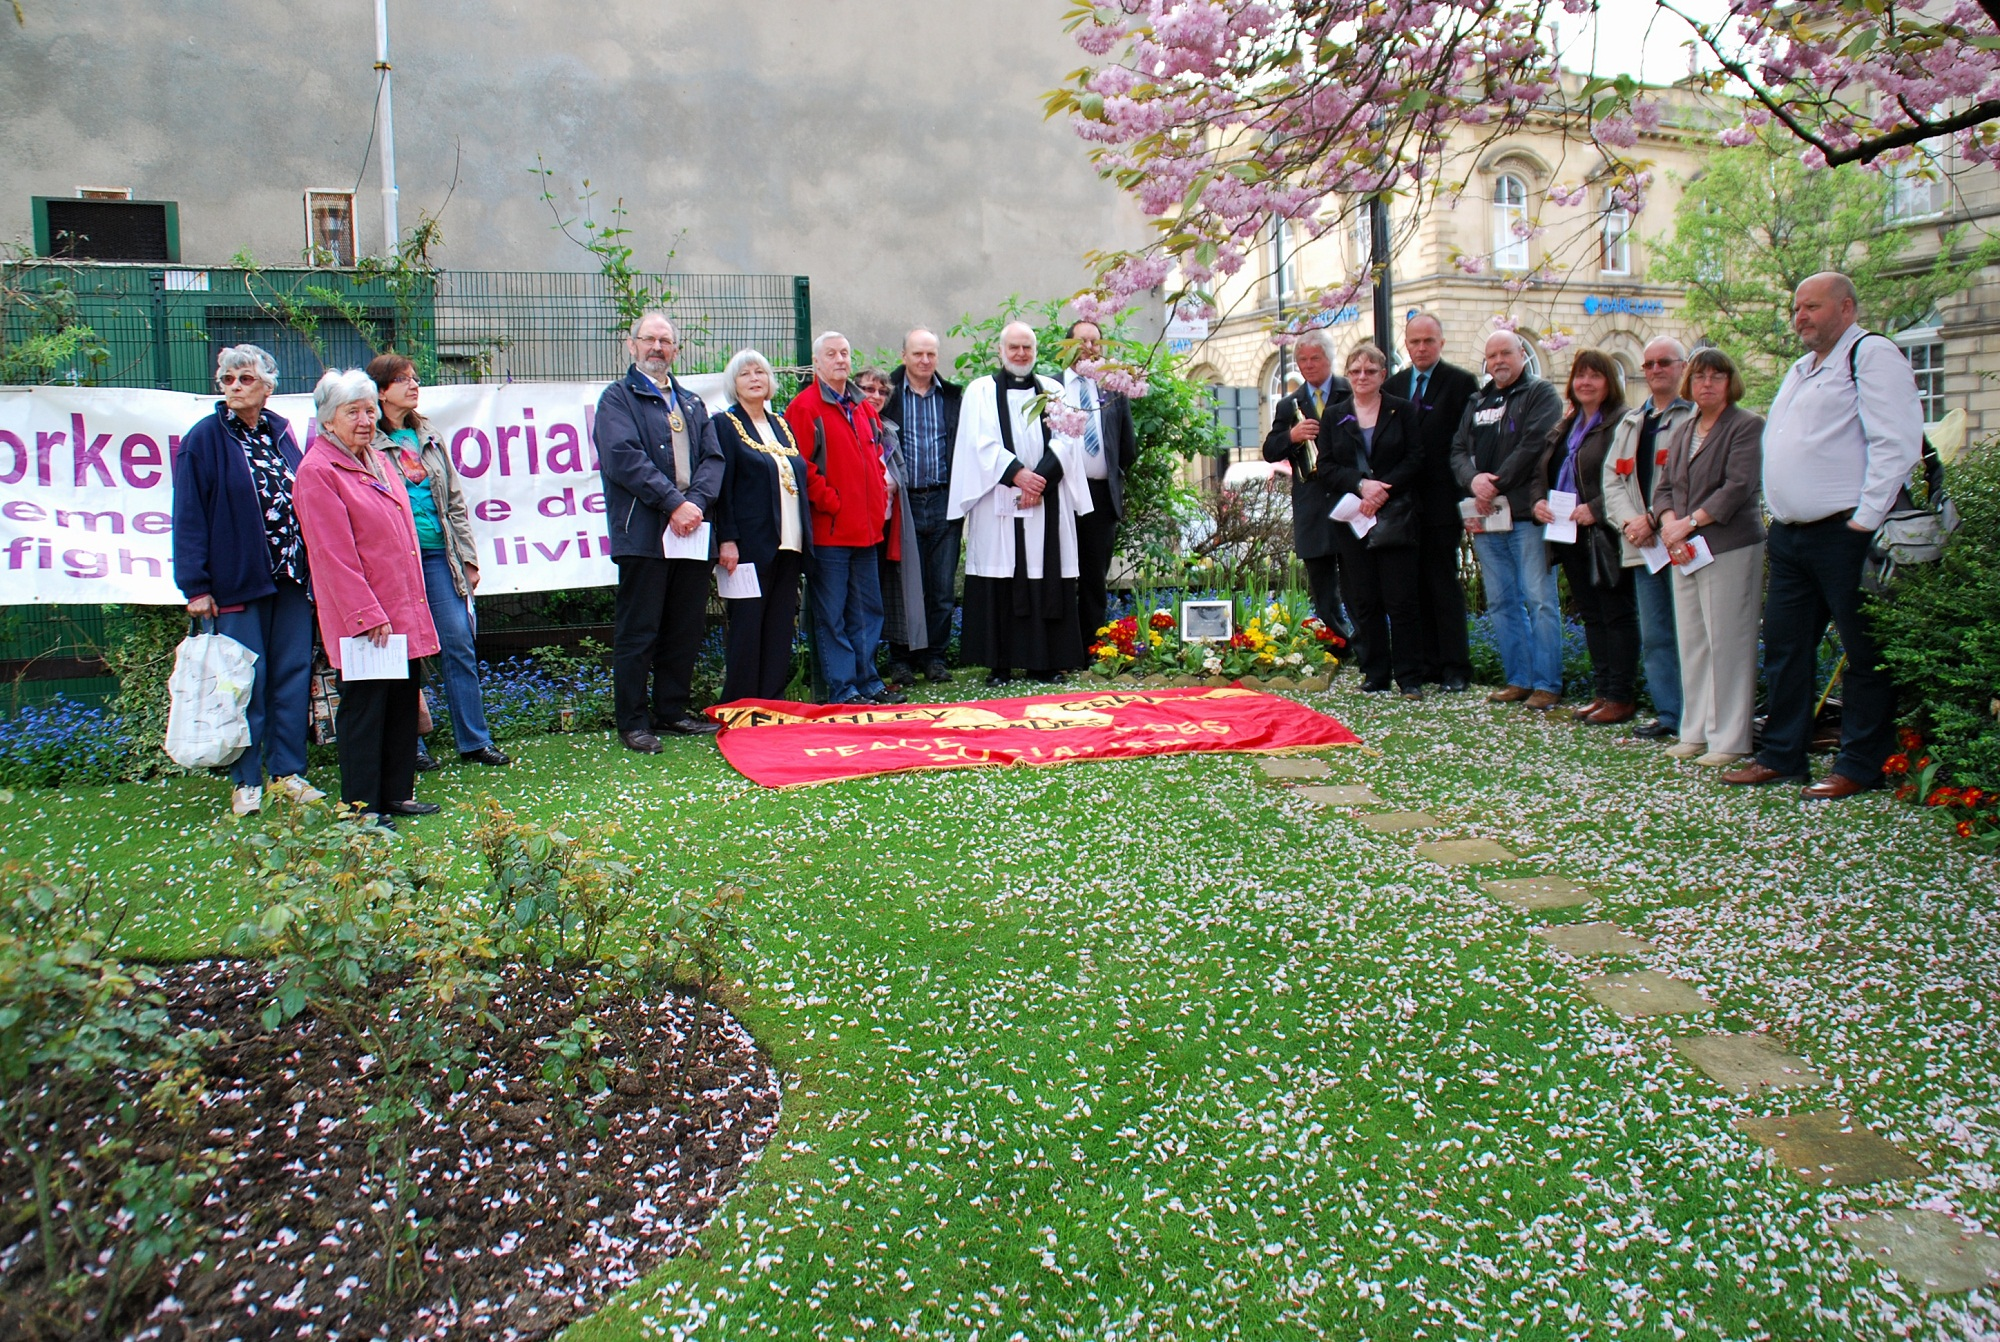 People gathered at the Workers' Memorial Day event, which was held at the Town Hall Square in Keighley for people to remember employees killed in their place of work